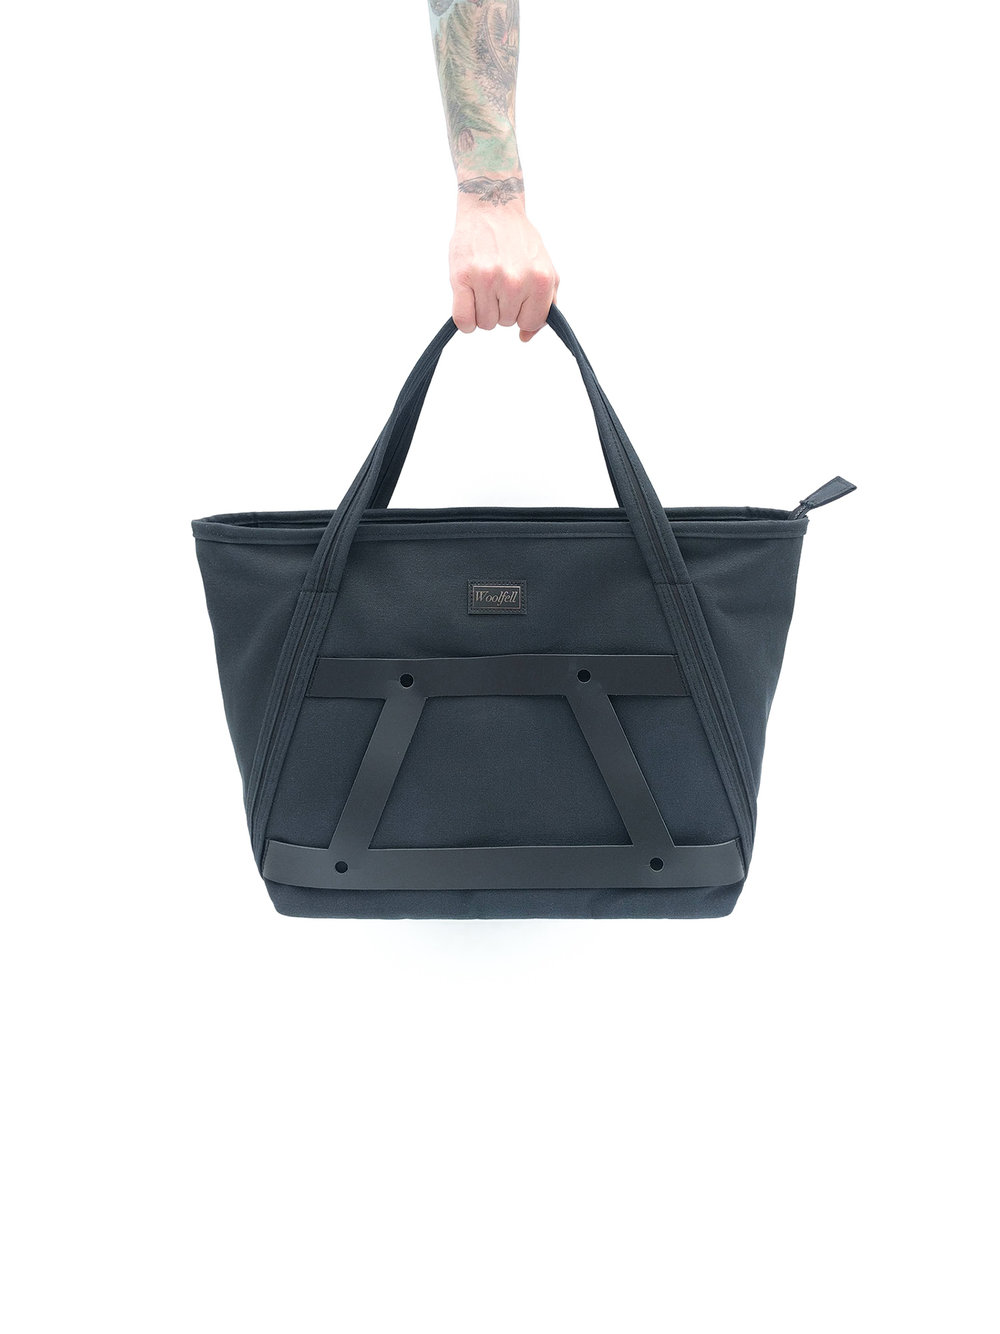 Bixi tote bag - more colors available180.00$